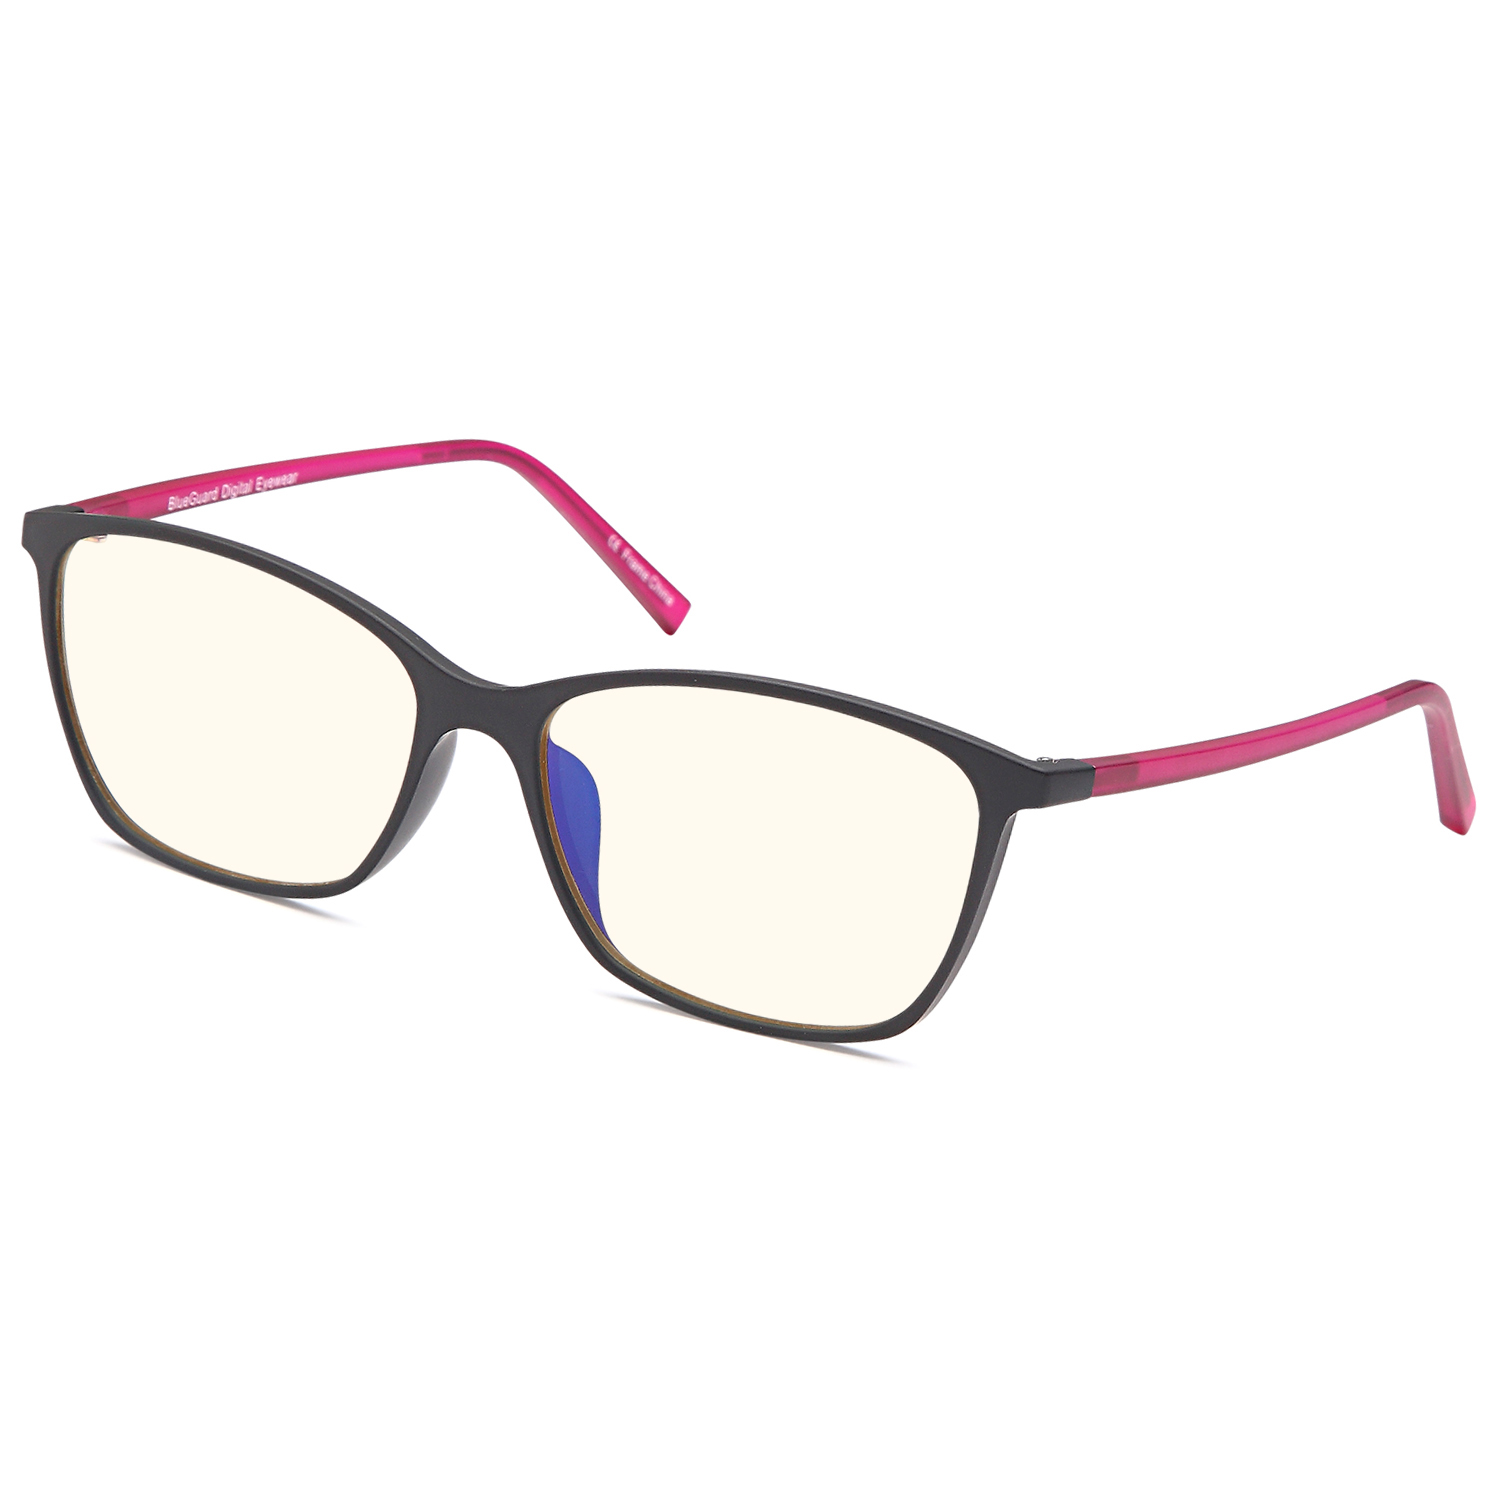 TRUST OPTICS Premium Optical Quality Glasses Frame in Modern Cateye RX Grooved Prescription Ready Rx-able Eyeglasses w Anti UV400 Anti Glare in Black Rose Color - Walmart.com | Tuggl